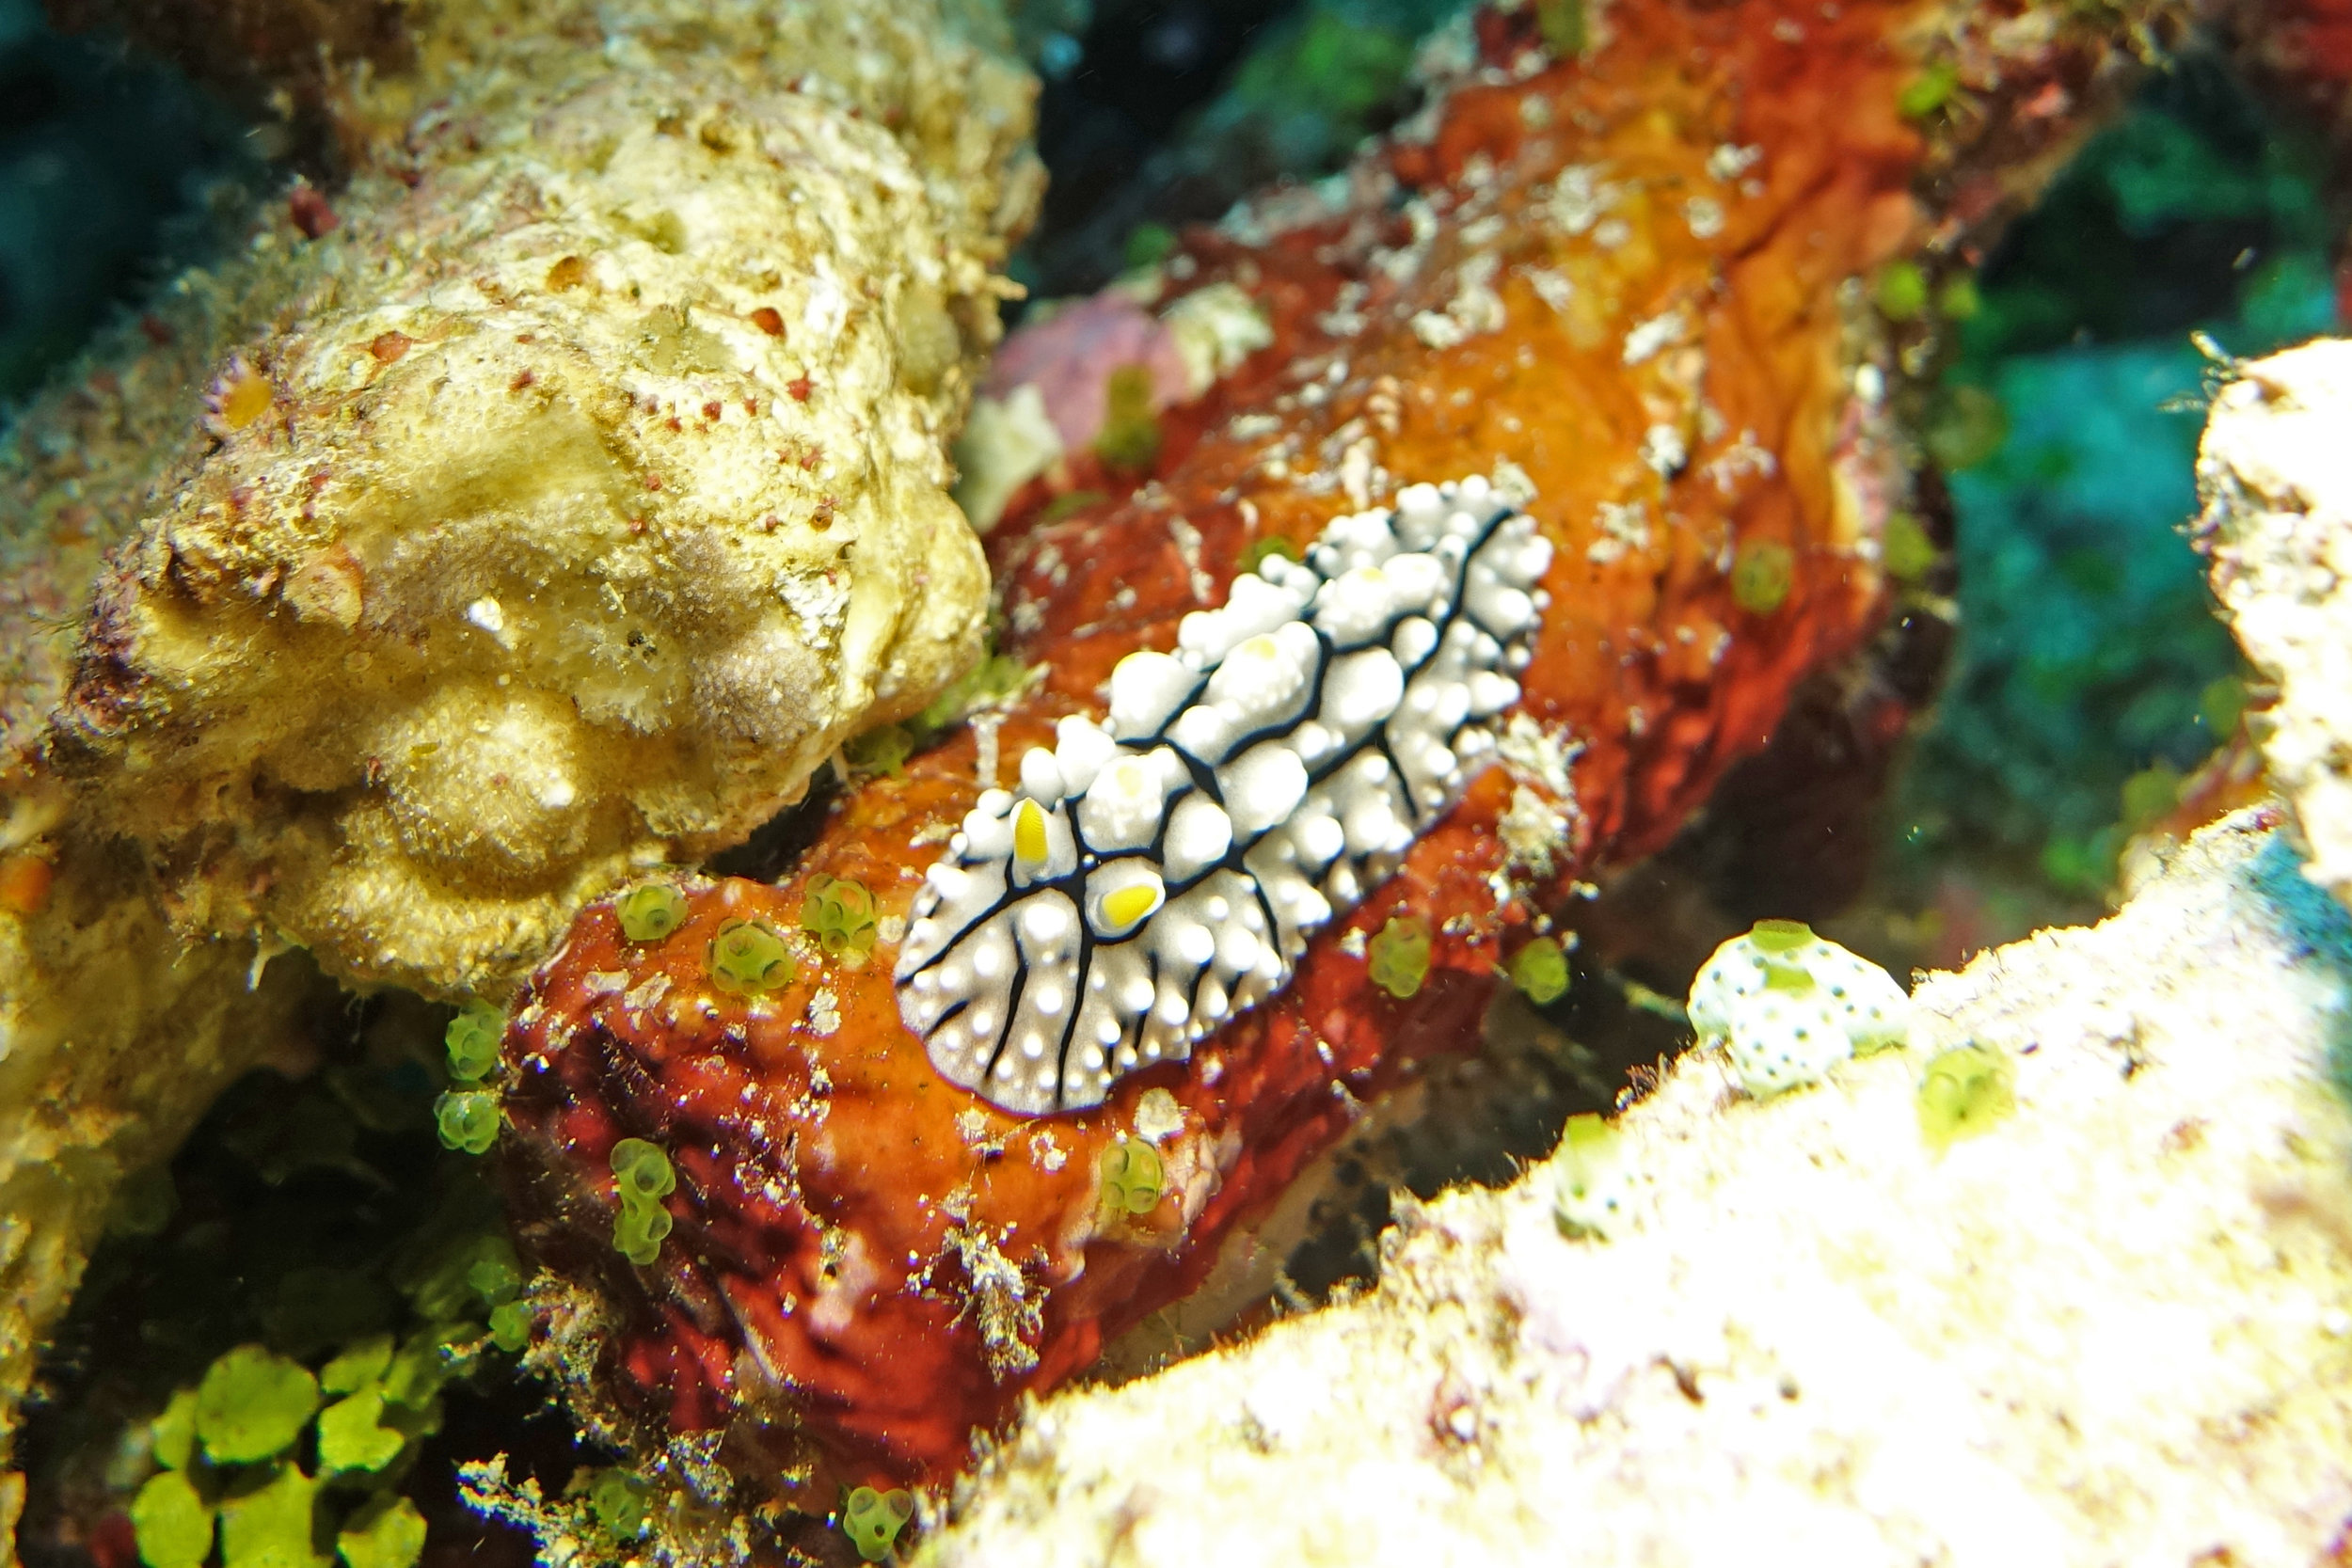 nudibranch 1558.jpg